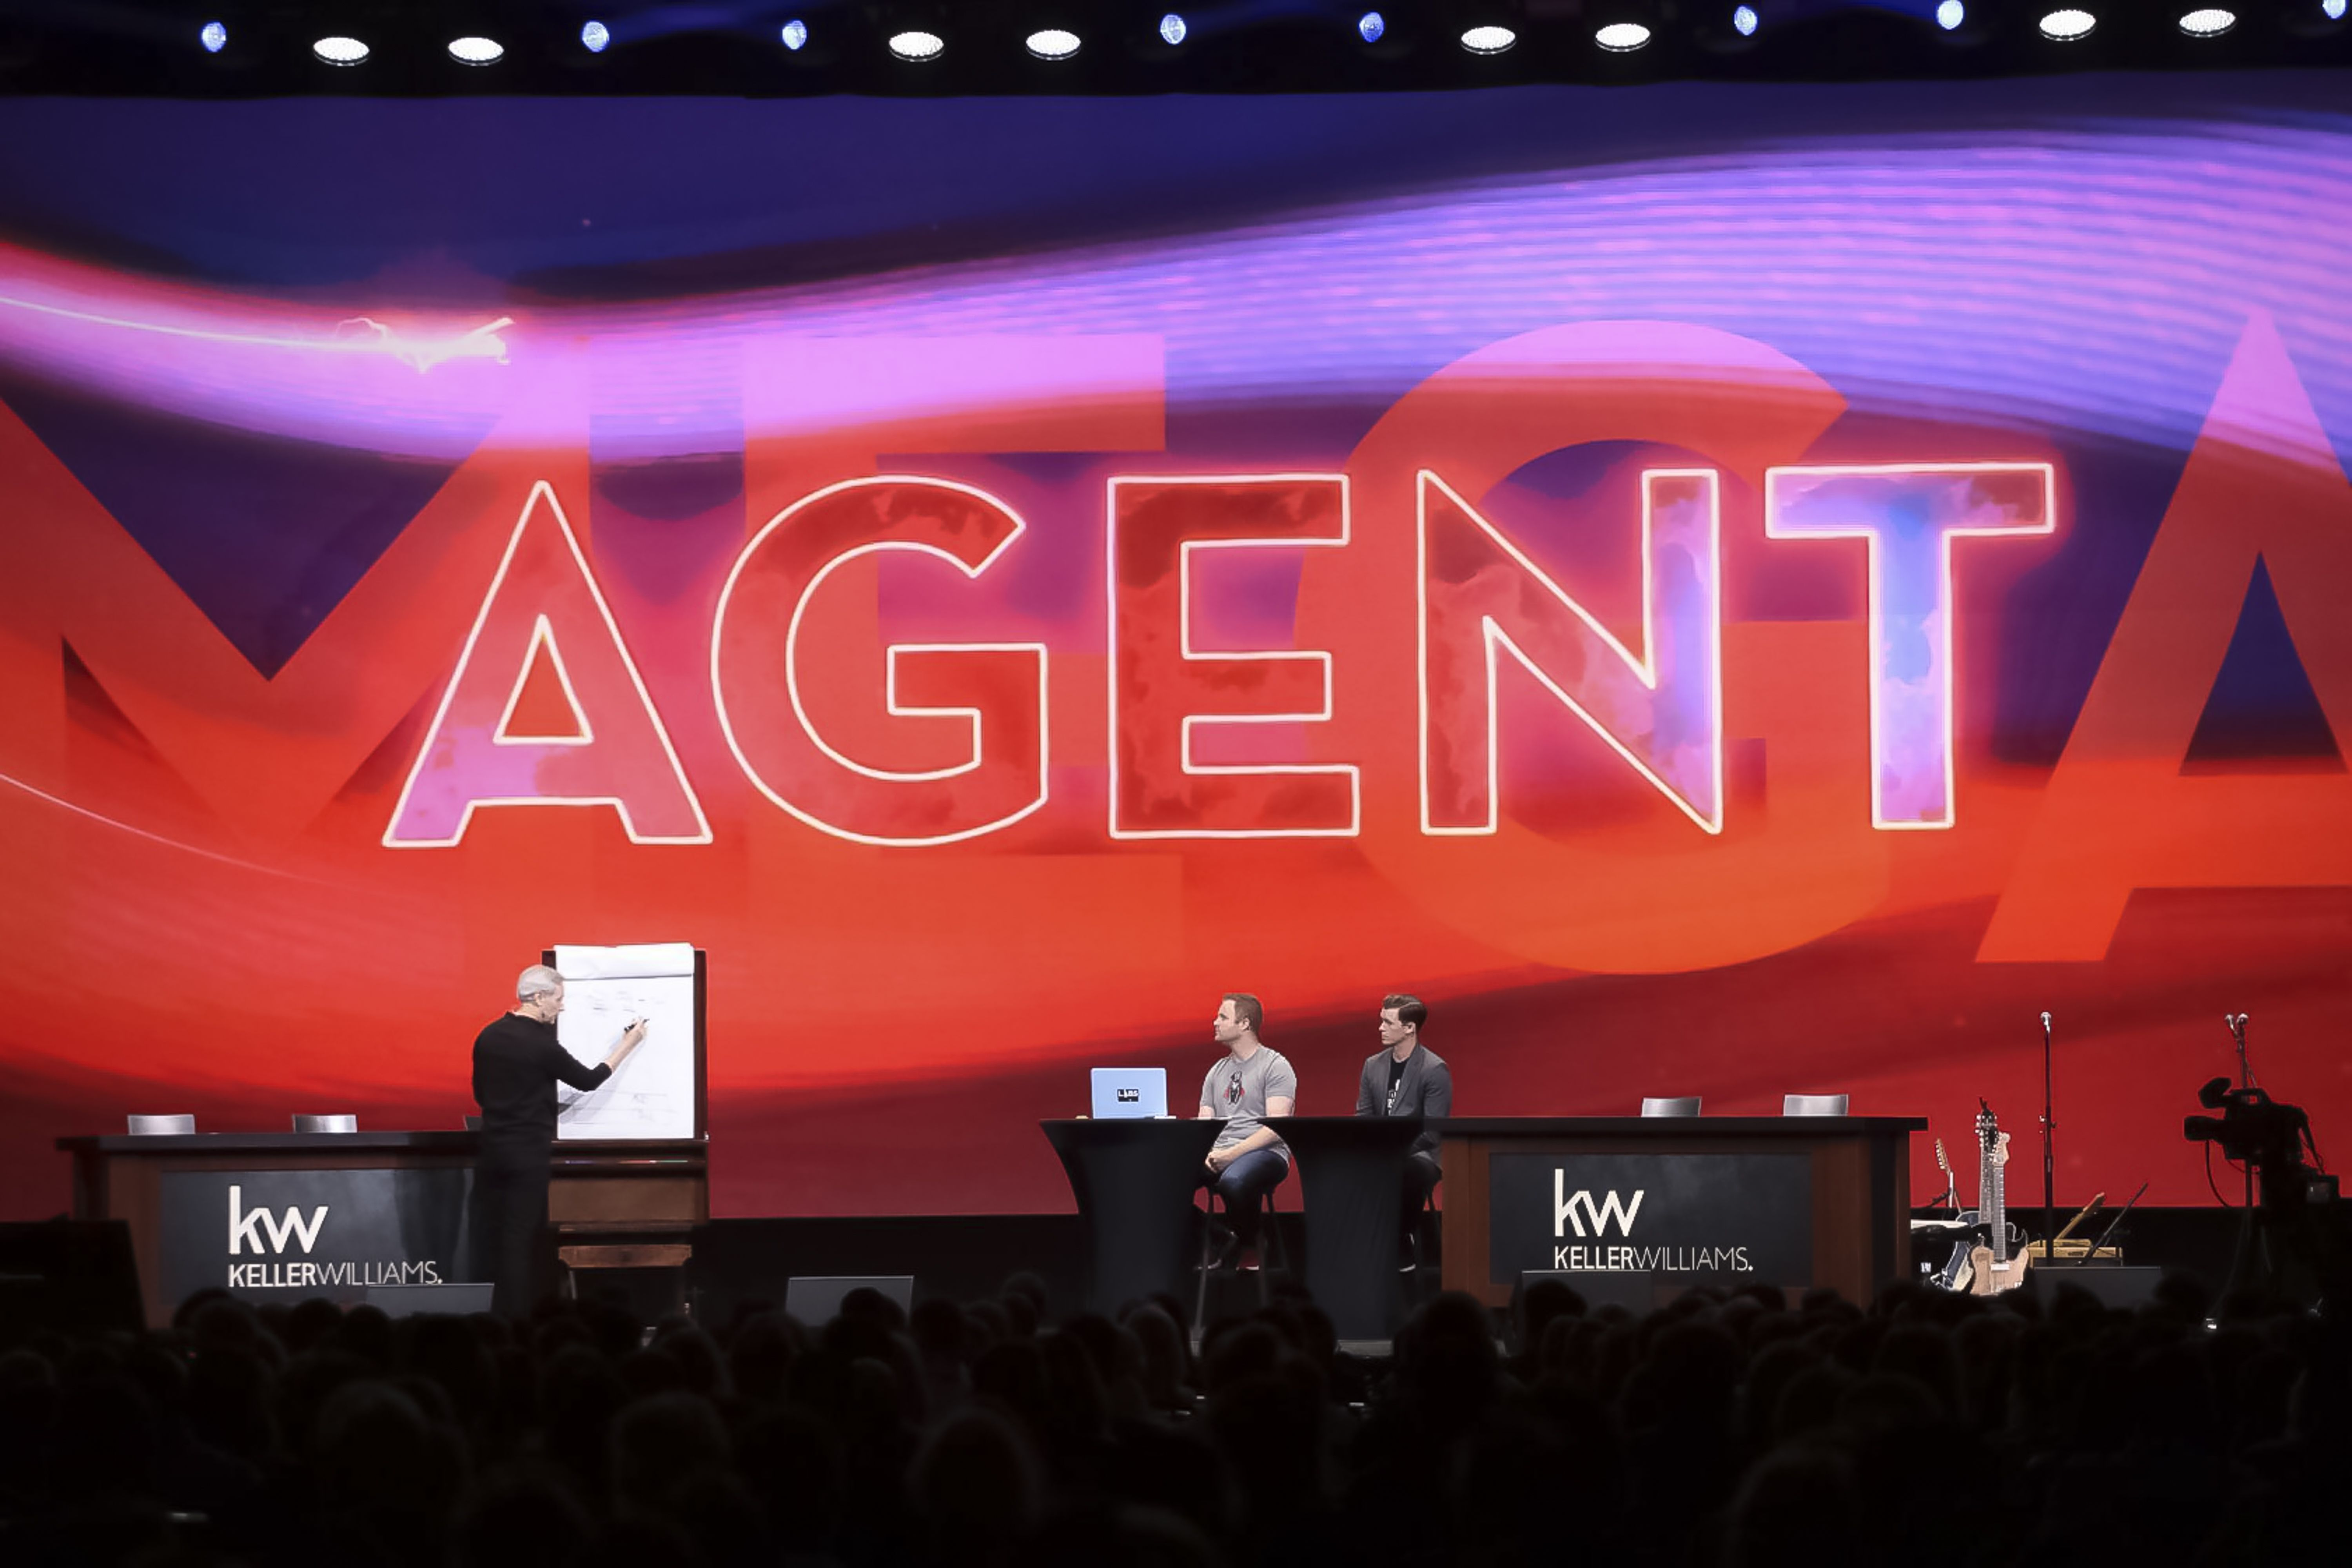 Keller williams realty conference shoot with images